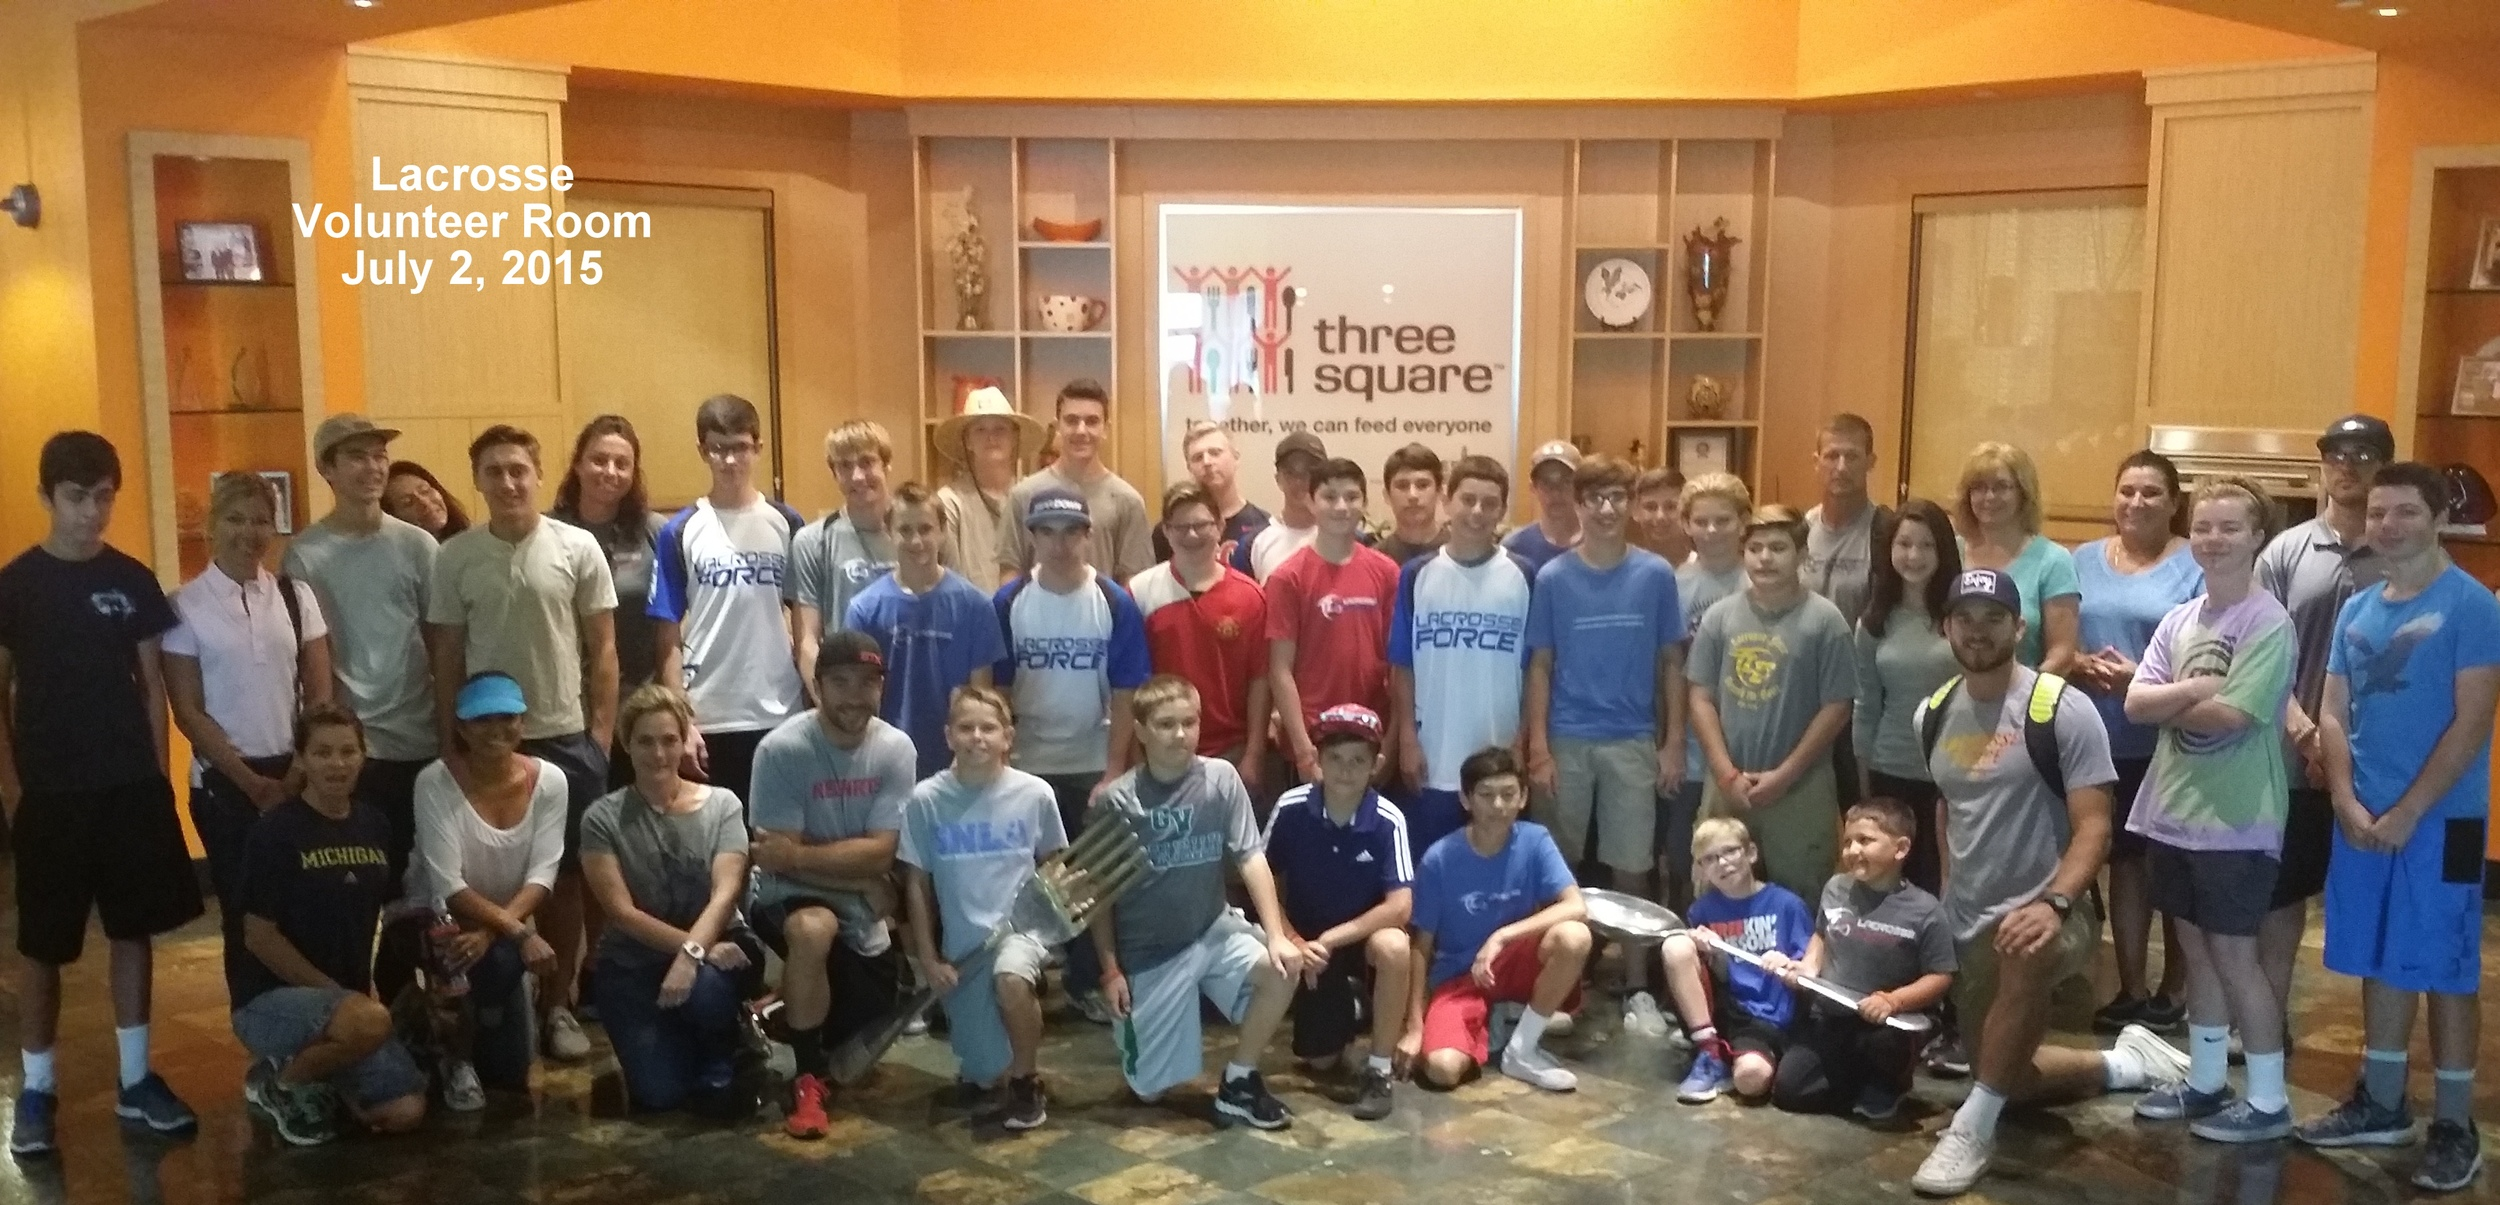 Our Lacrosse Forcegroup at the Three Square warehouse